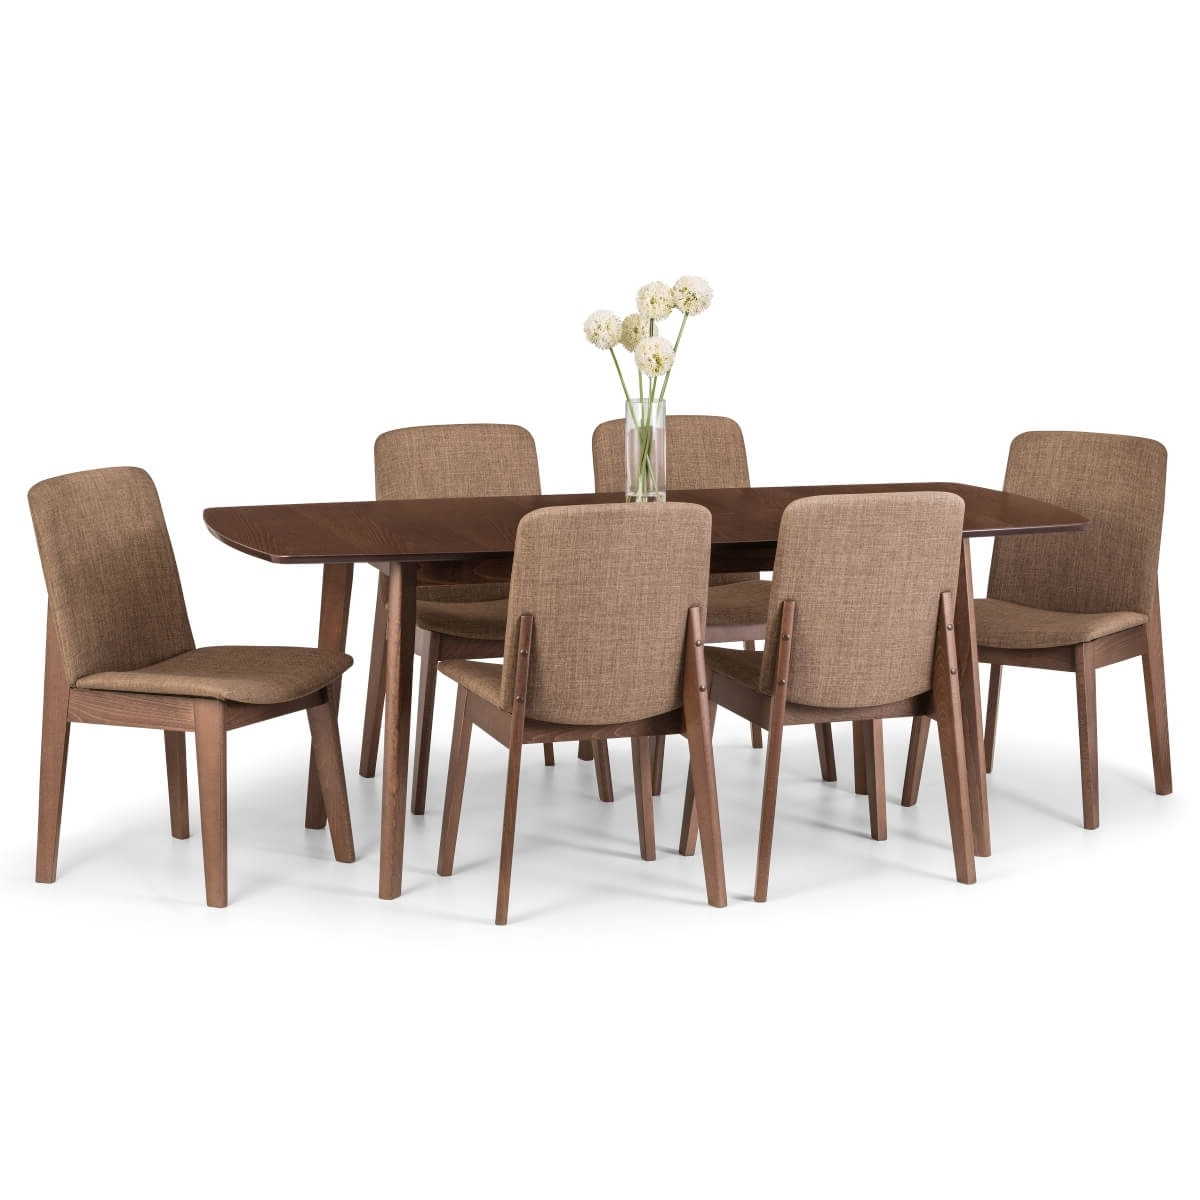 Well Known Dining Set – Kensington Dining Table, 6 Chairs In Walnut Ken205 Throughout Walnut Dining Tables And 6 Chairs (View 24 of 25)